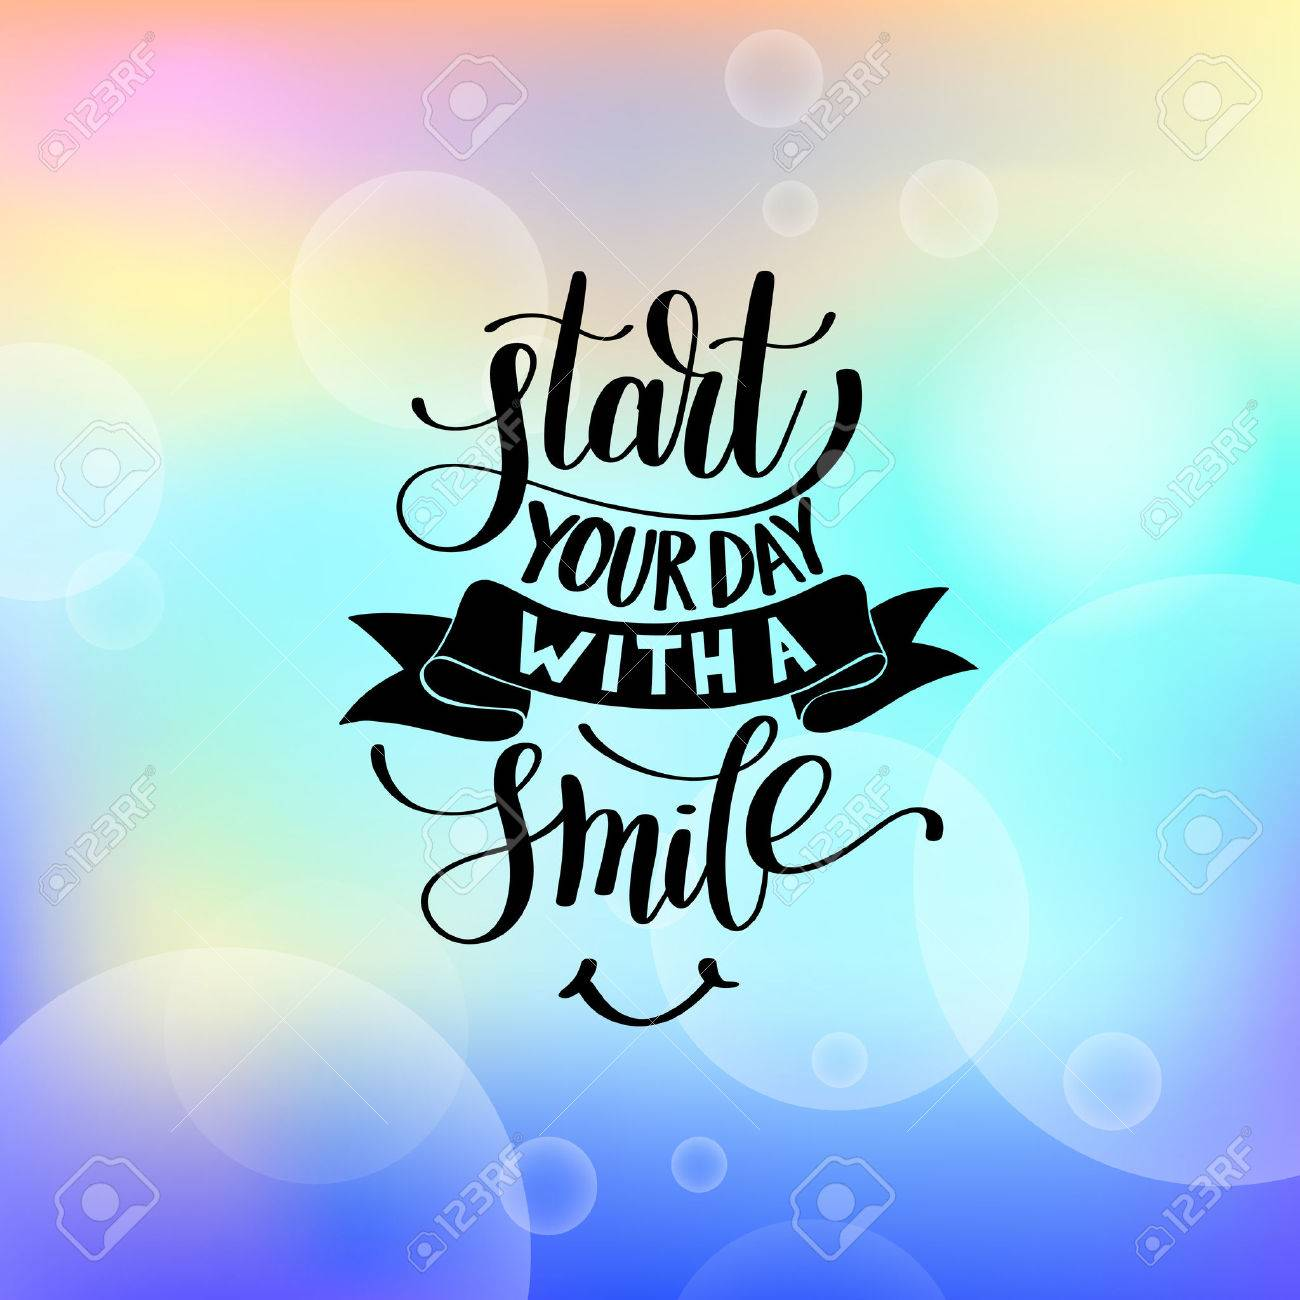 Start Your Day With A Smile Vector Text Phrase Illustration On